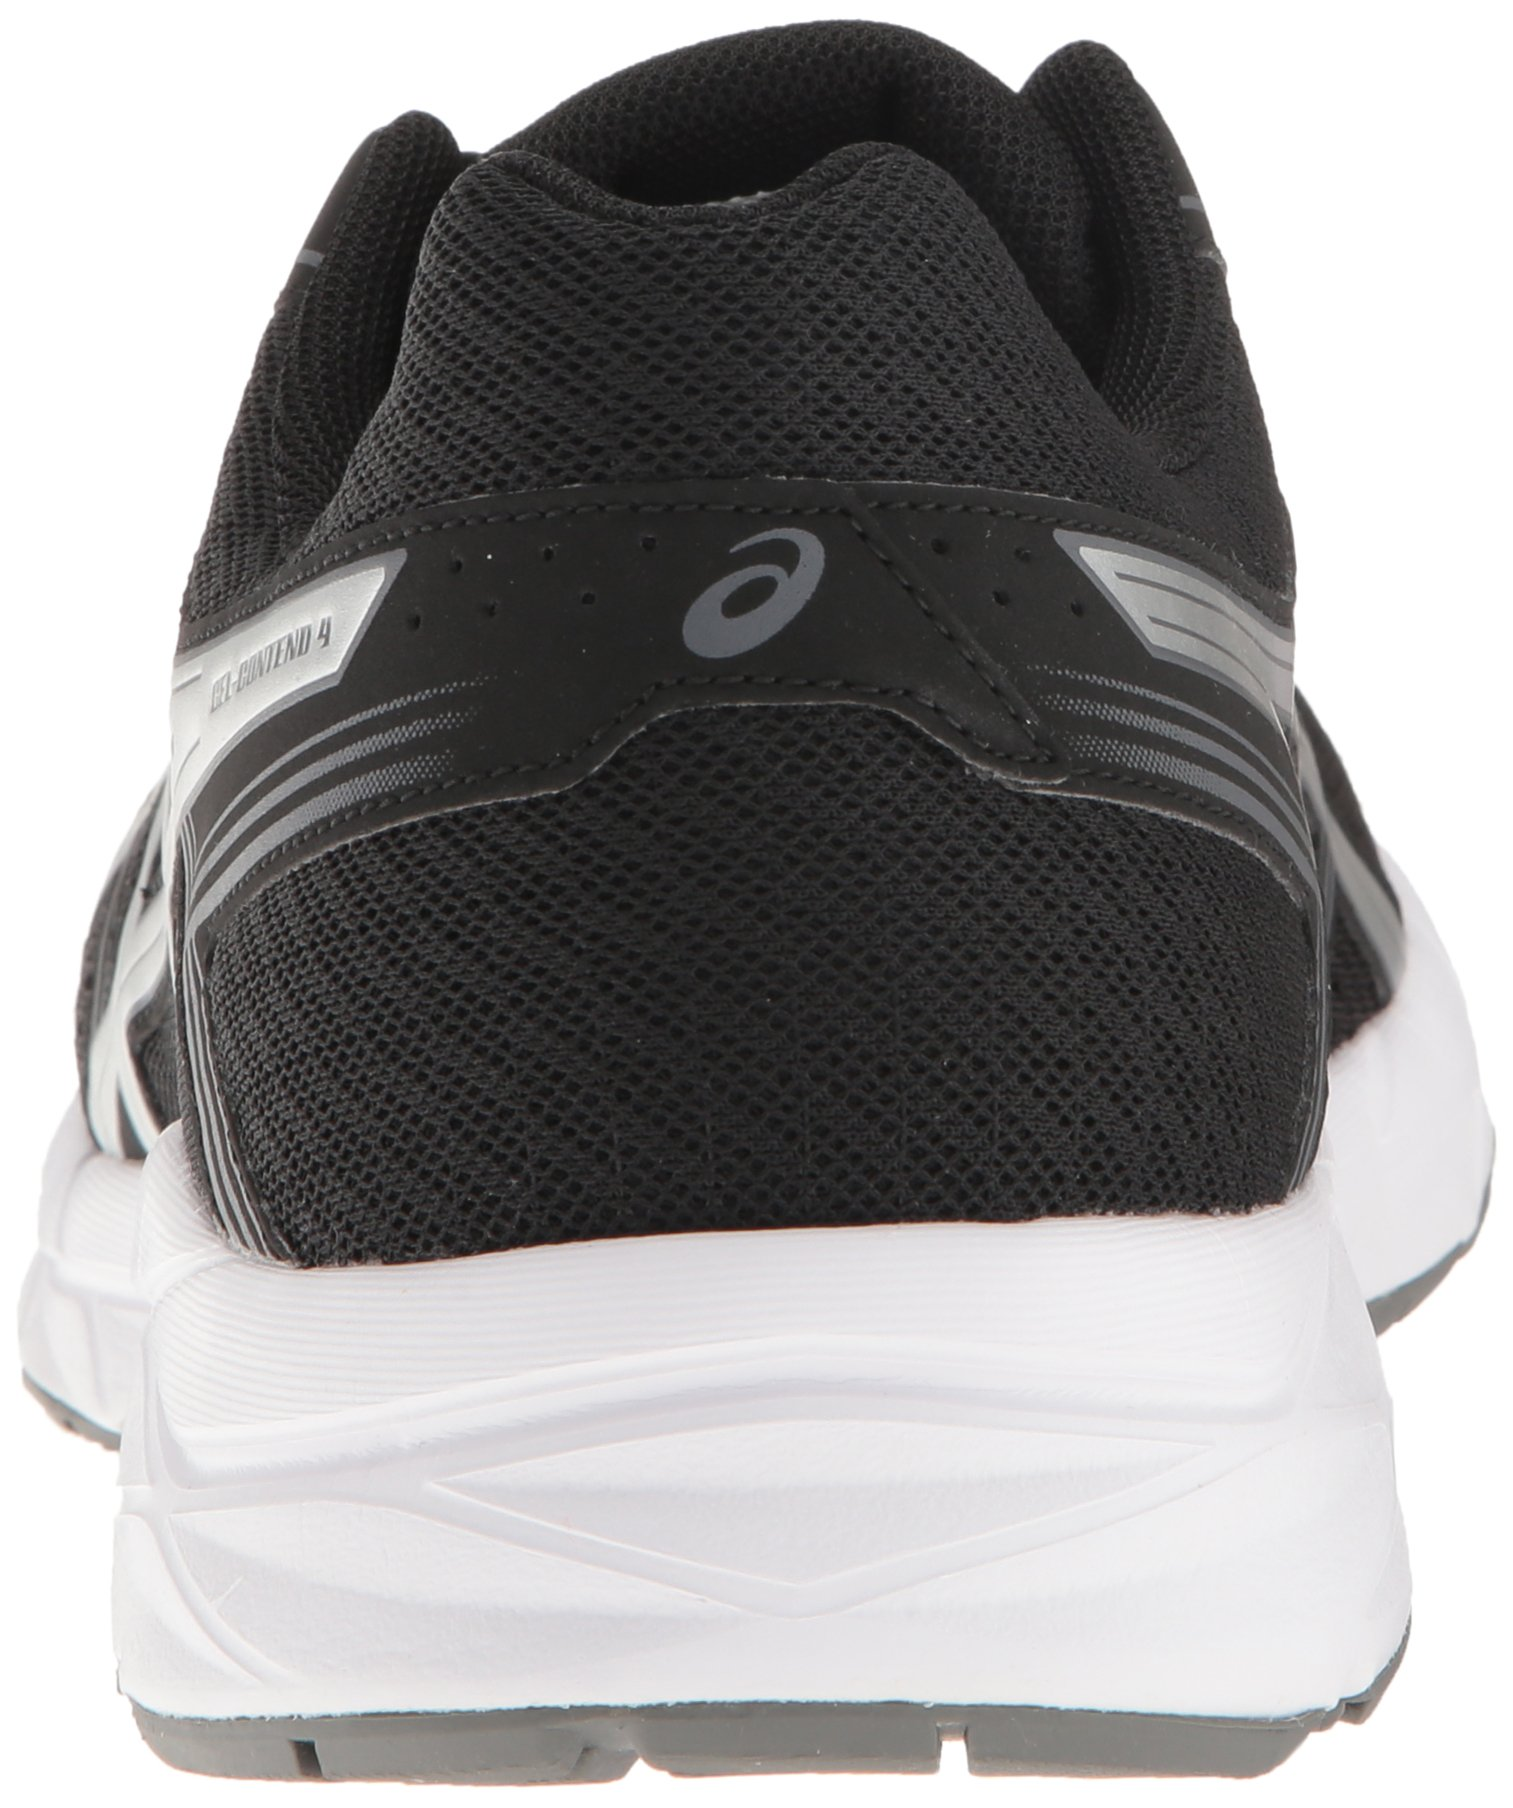 ASICS Men's Gel-Contend 4 Running Shoe, Black/Silver/Carbon, 7.5 M US by ASICS (Image #2)